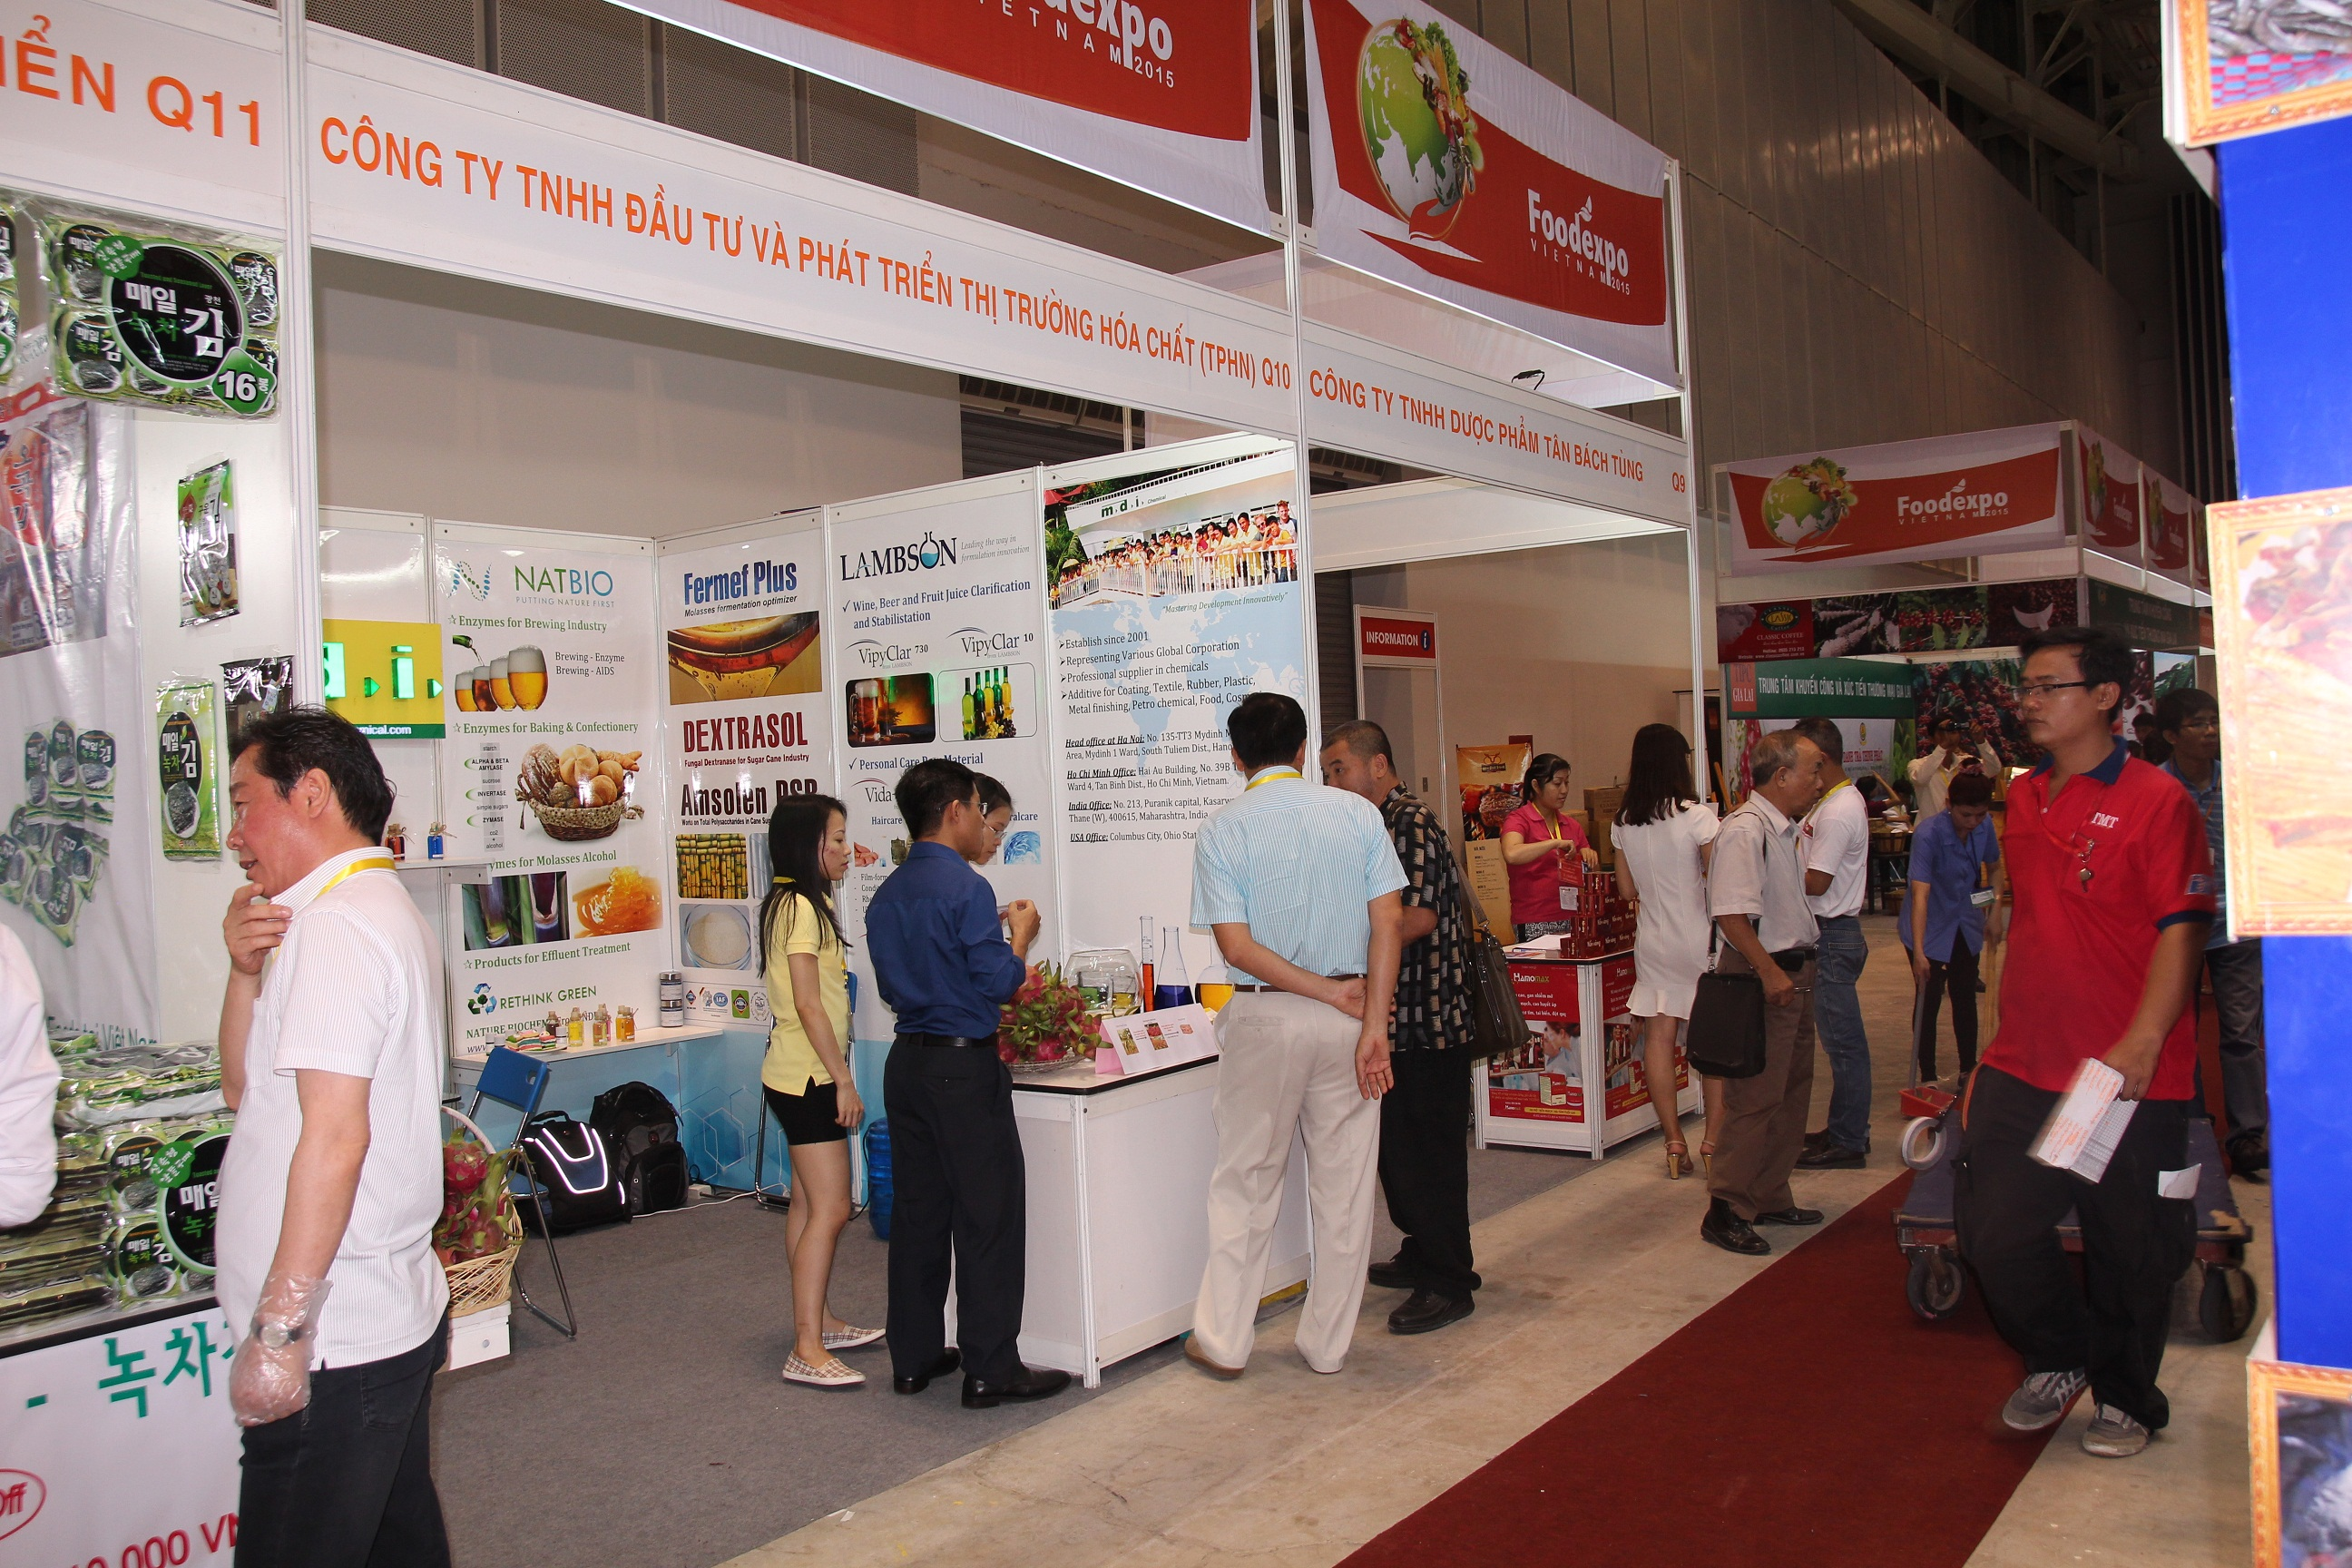 MDI joined the international food technology expo 2015